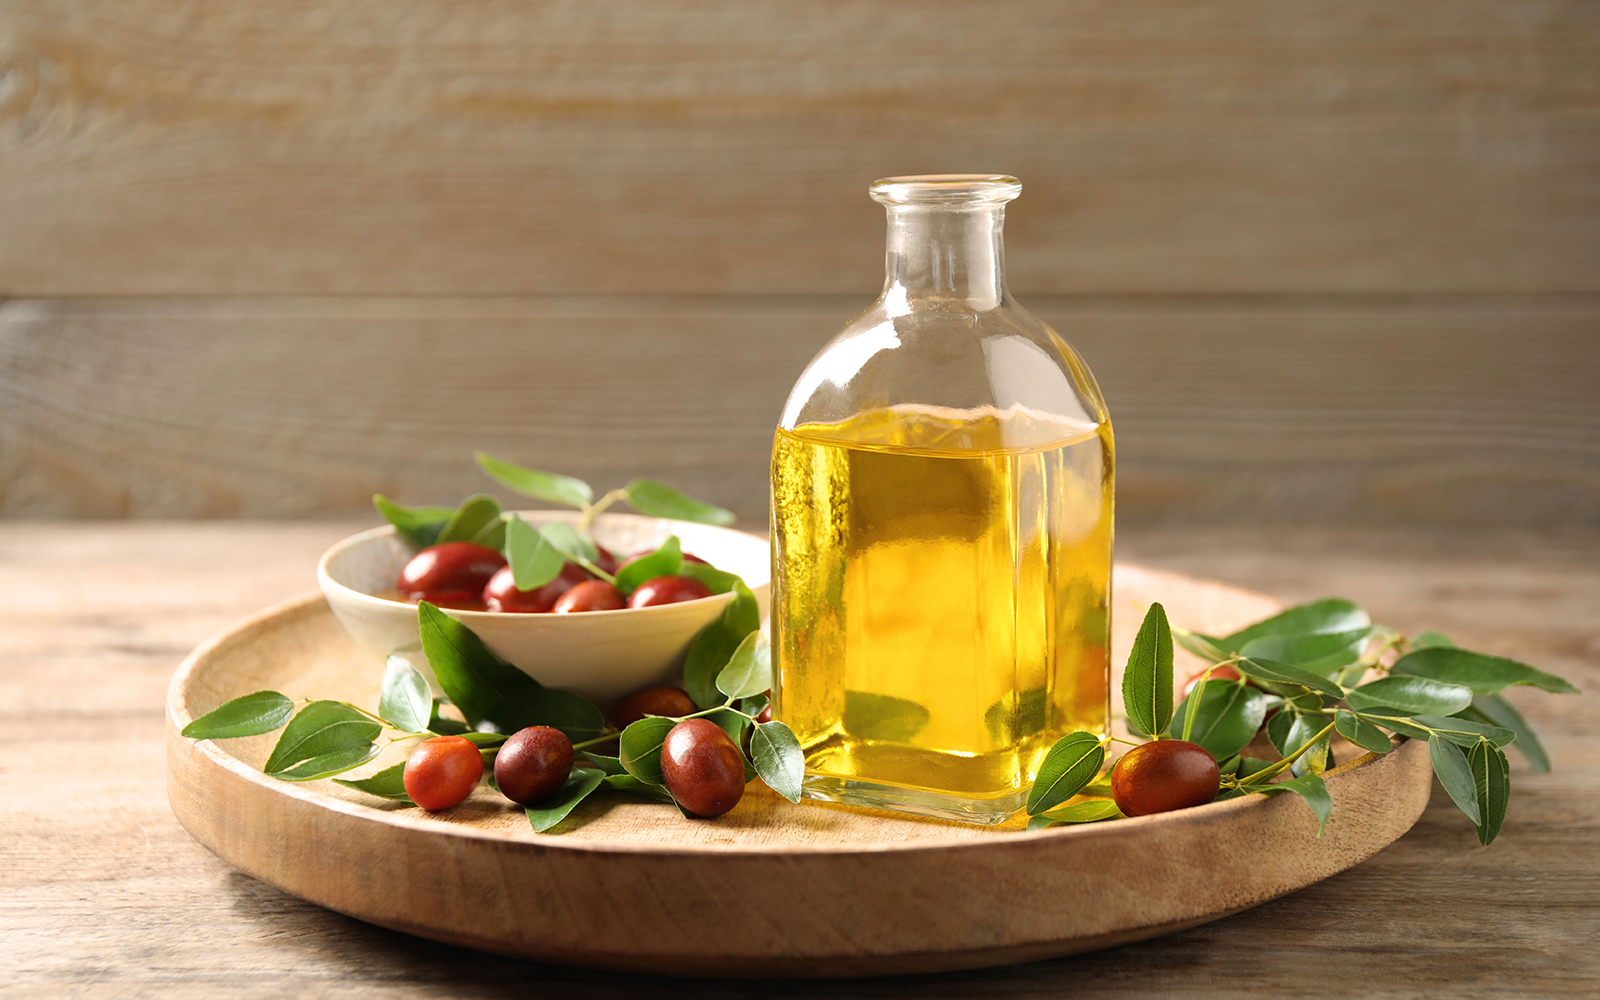 12 Best Jojoba Oil Products For Your Daily Grooming Routine | SPY